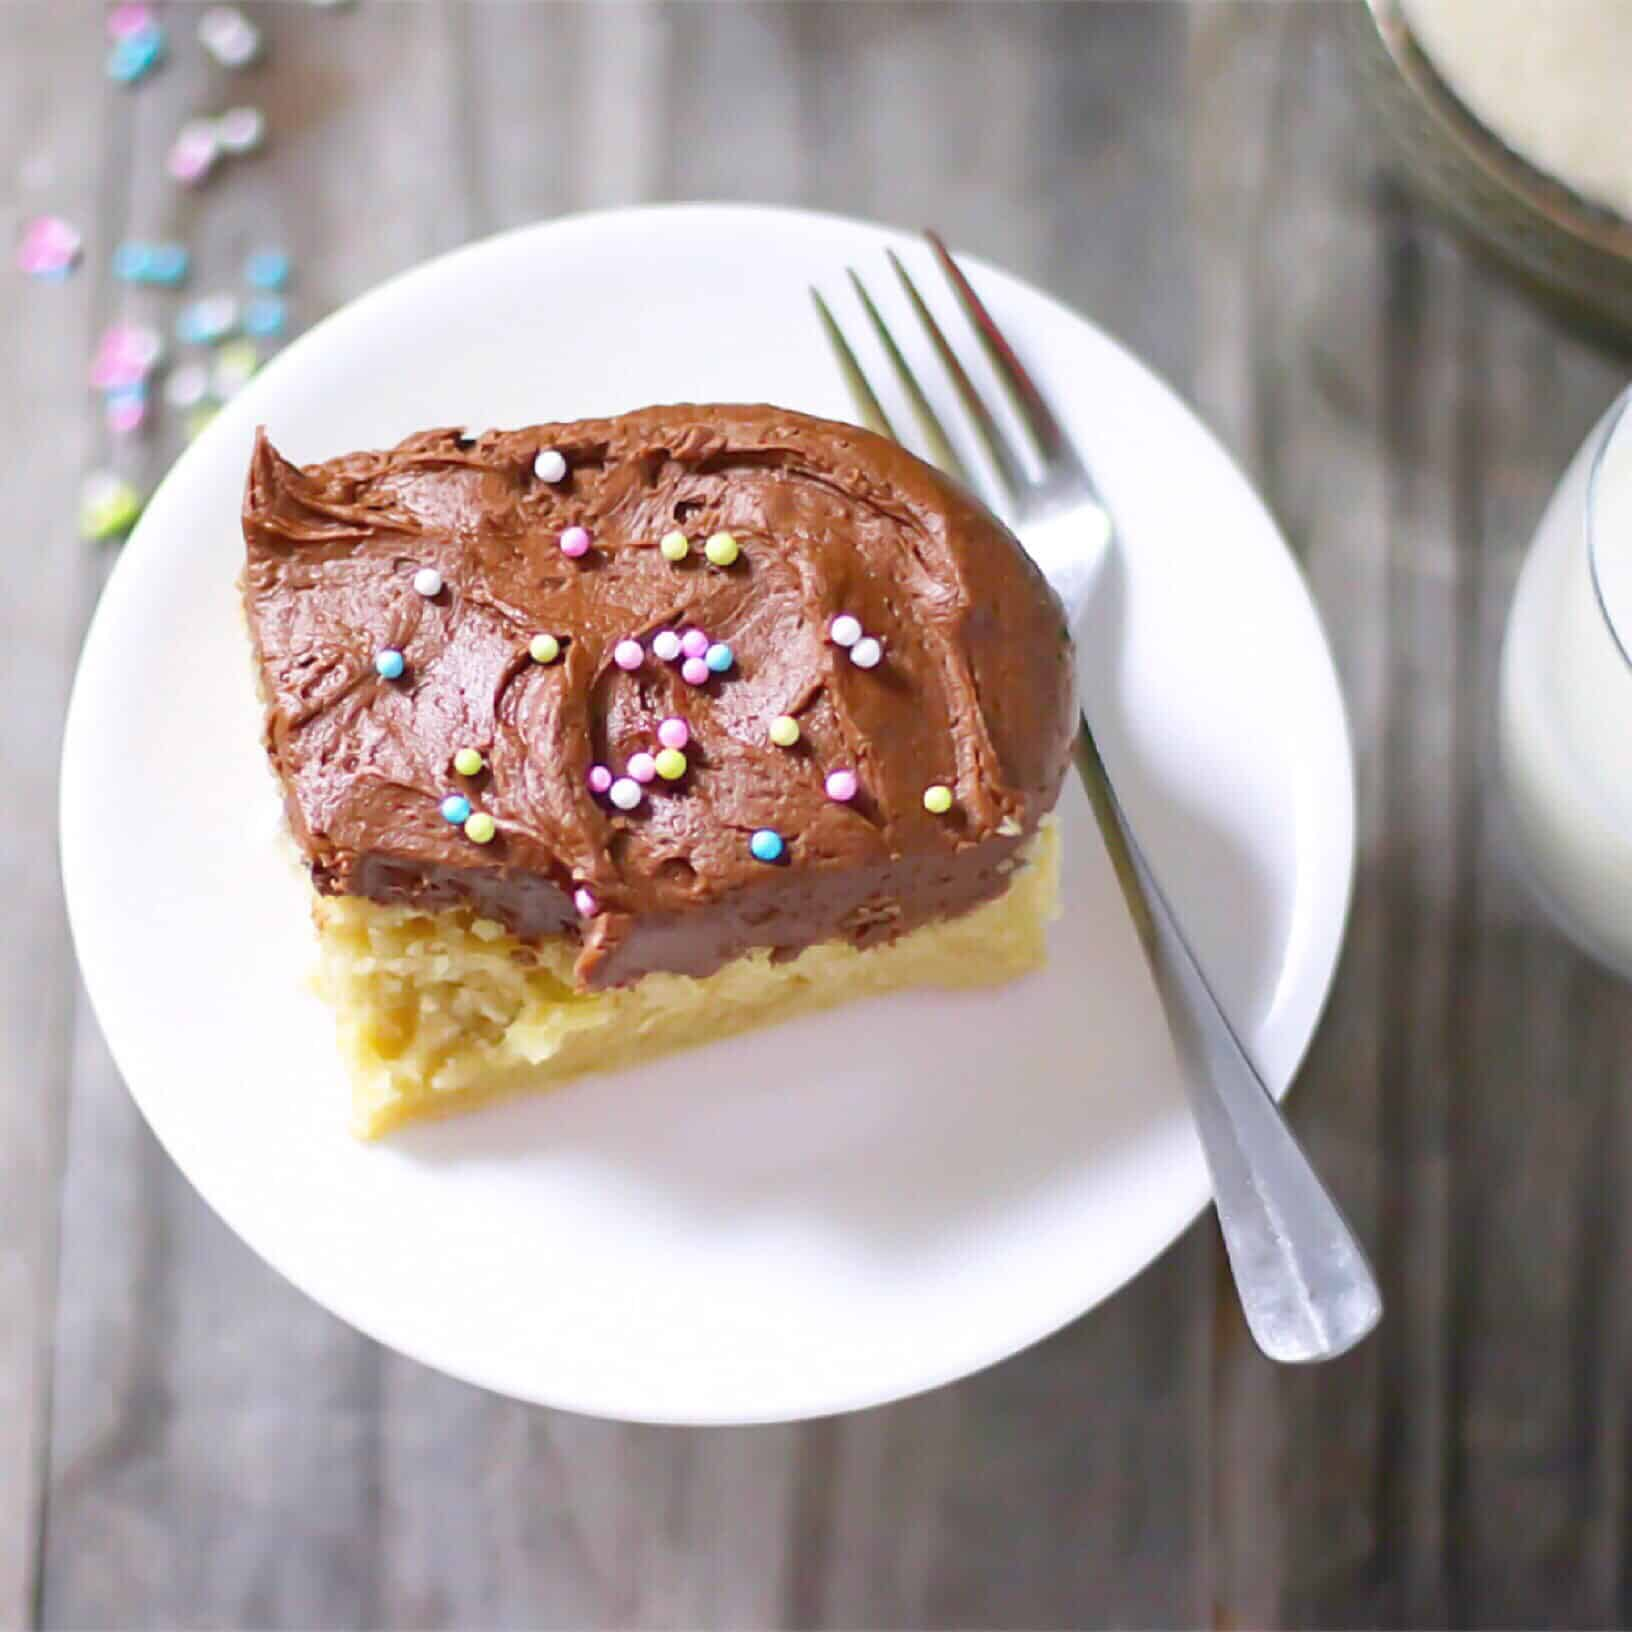 Duncan Hines Yellow Cake With Chocolate Frosting